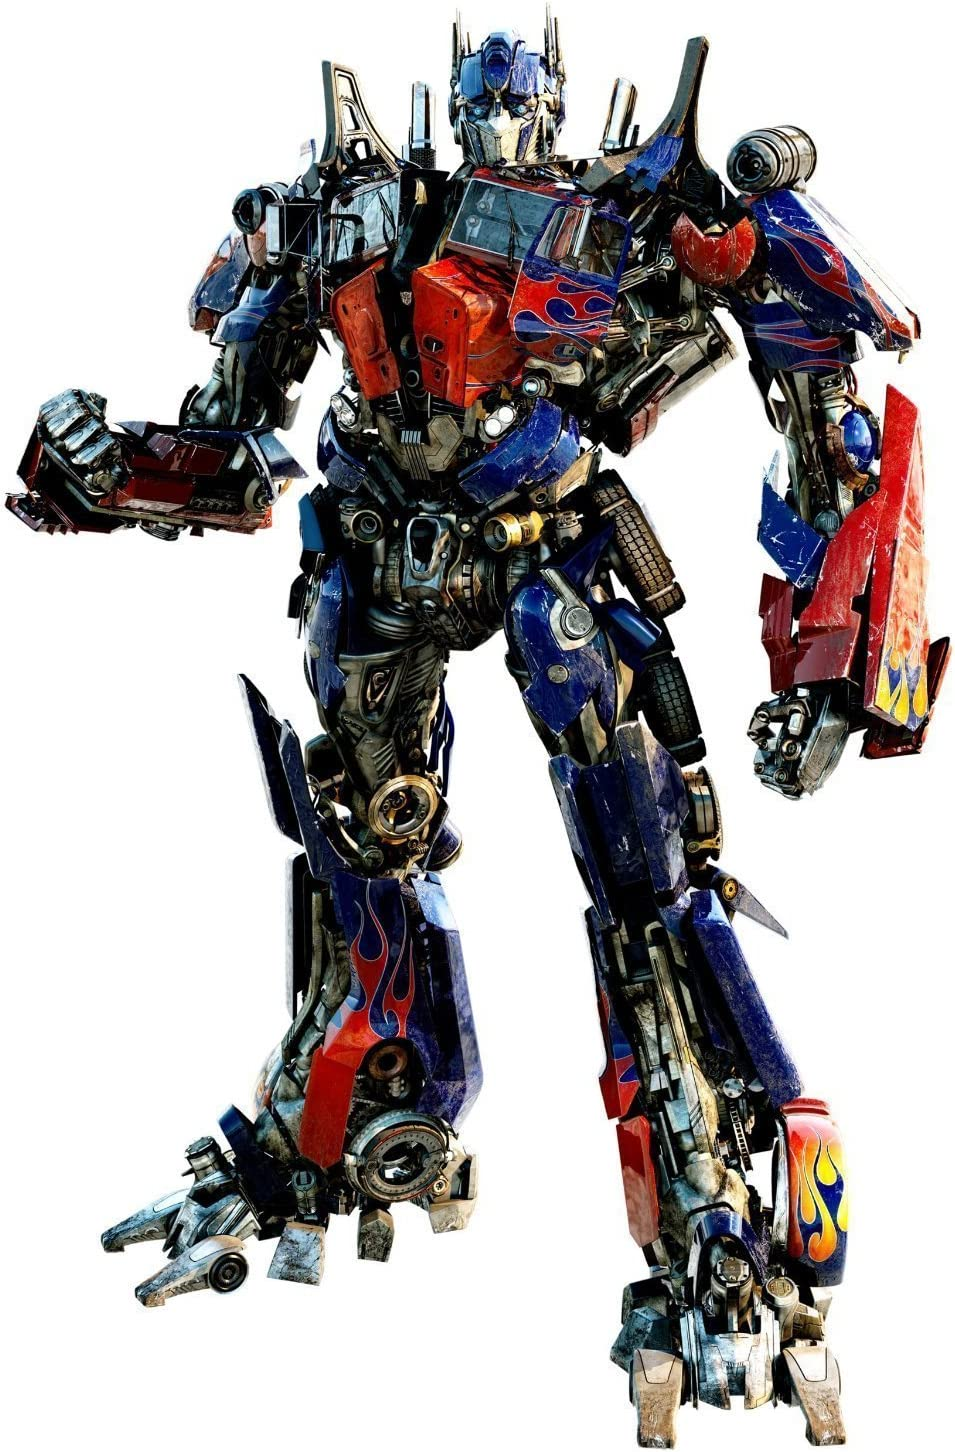 Transformer Wall Decal - Optimus Prime - Giant Wall Sticker Decor Party Decoration (Optimus Prime Giant)